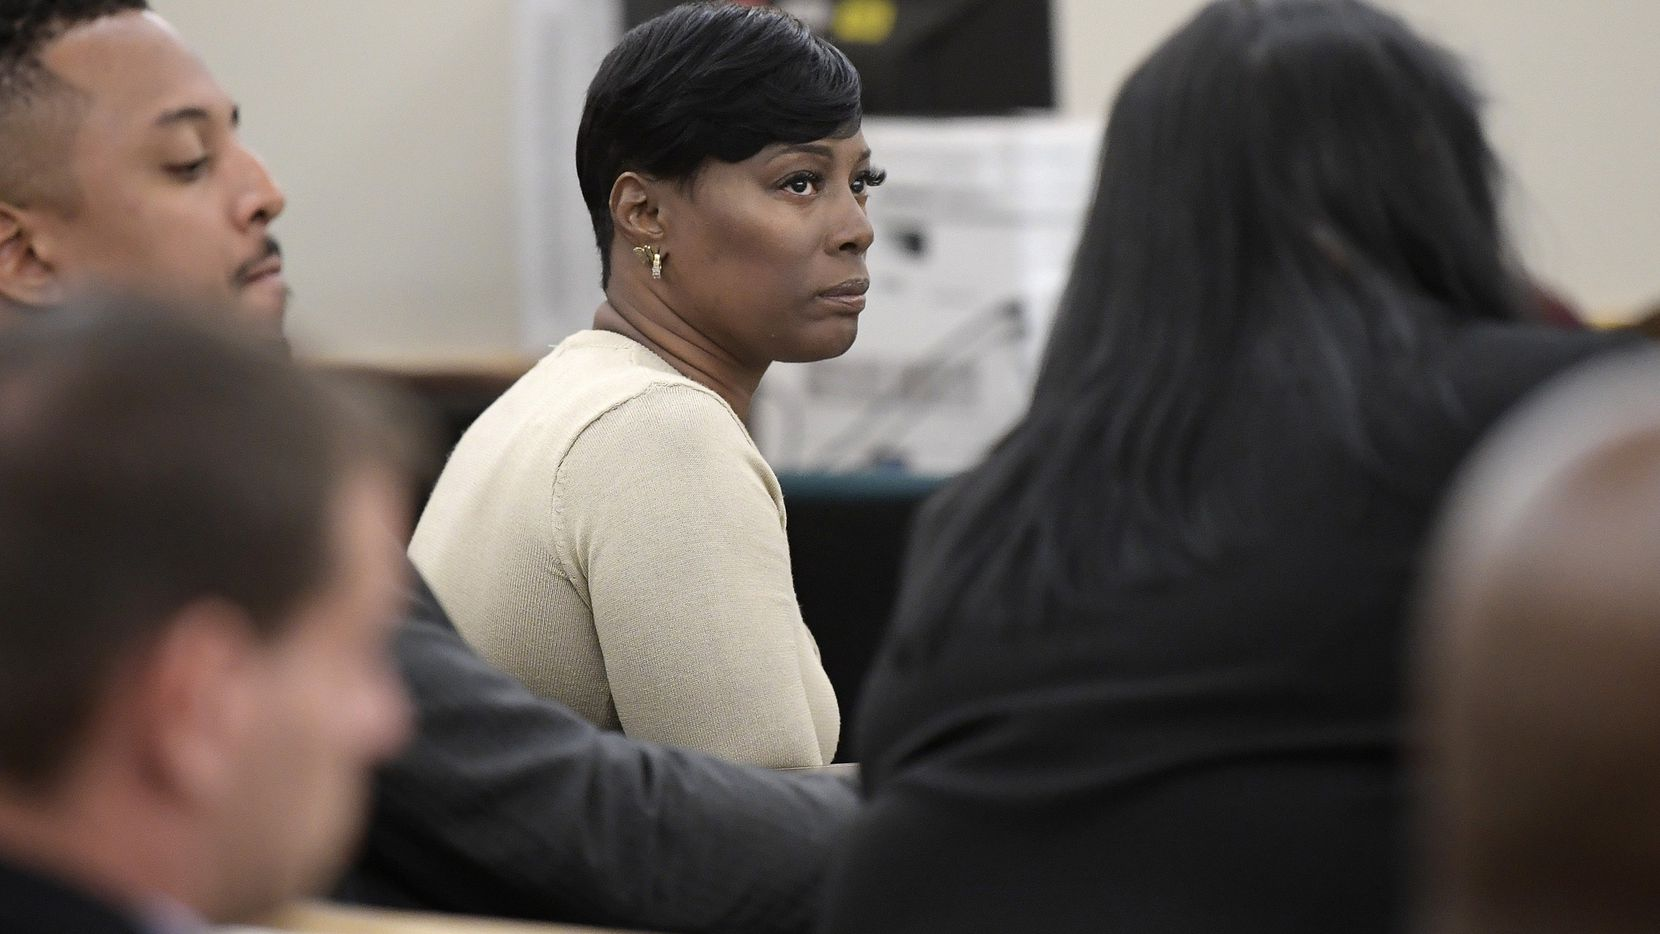 Crystal Mason was convicted of illegal voting and sentenced to five years in prison earlier this year.